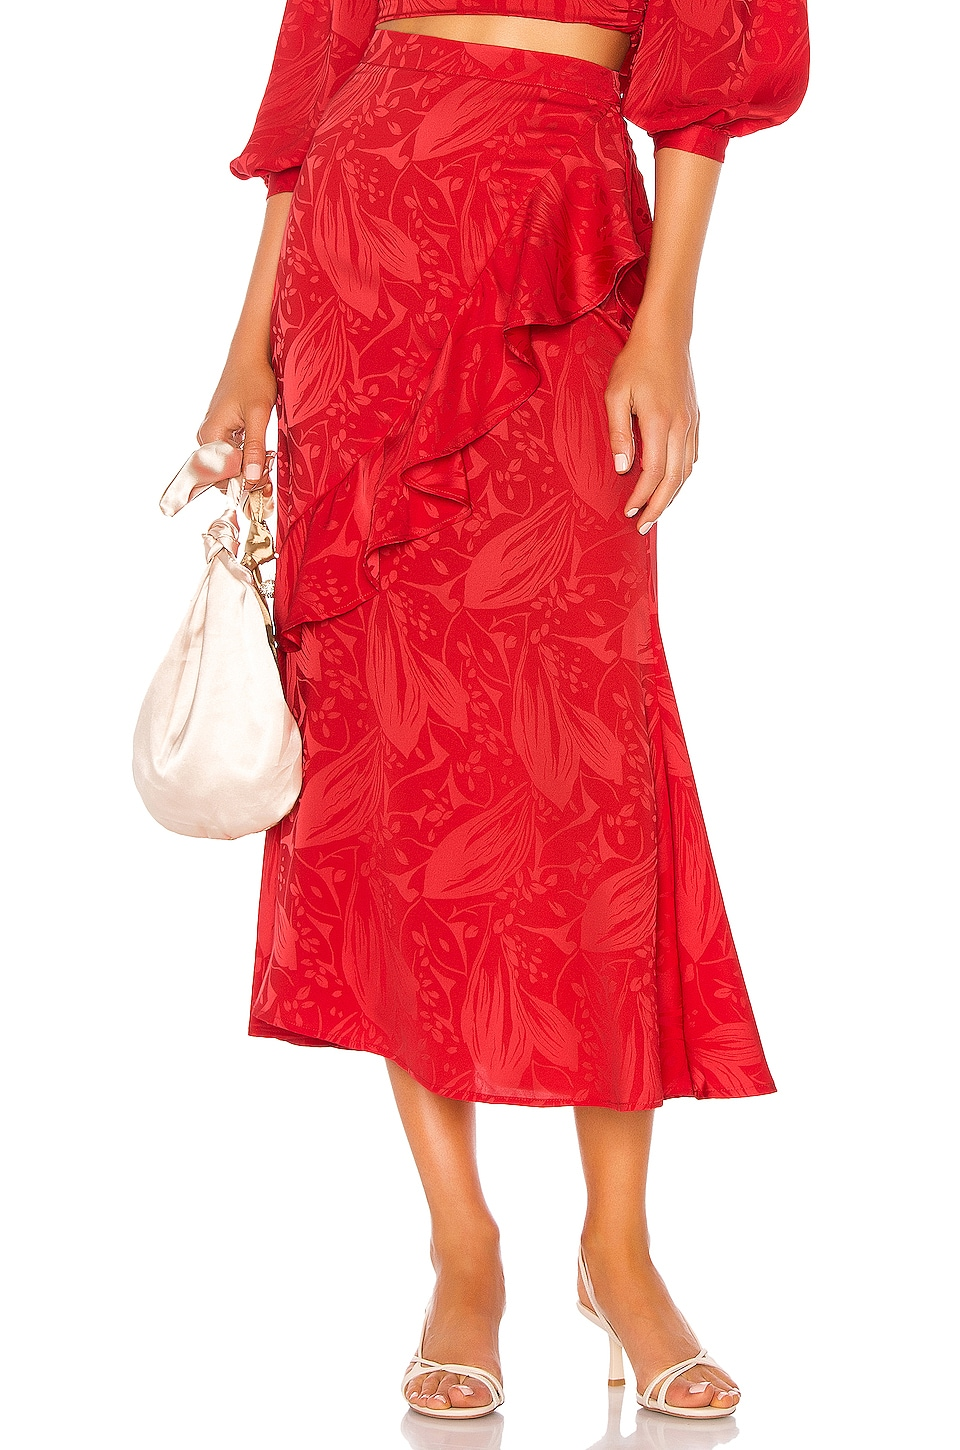 Song of Style Eaton Midi Skirt in Scarlet Red